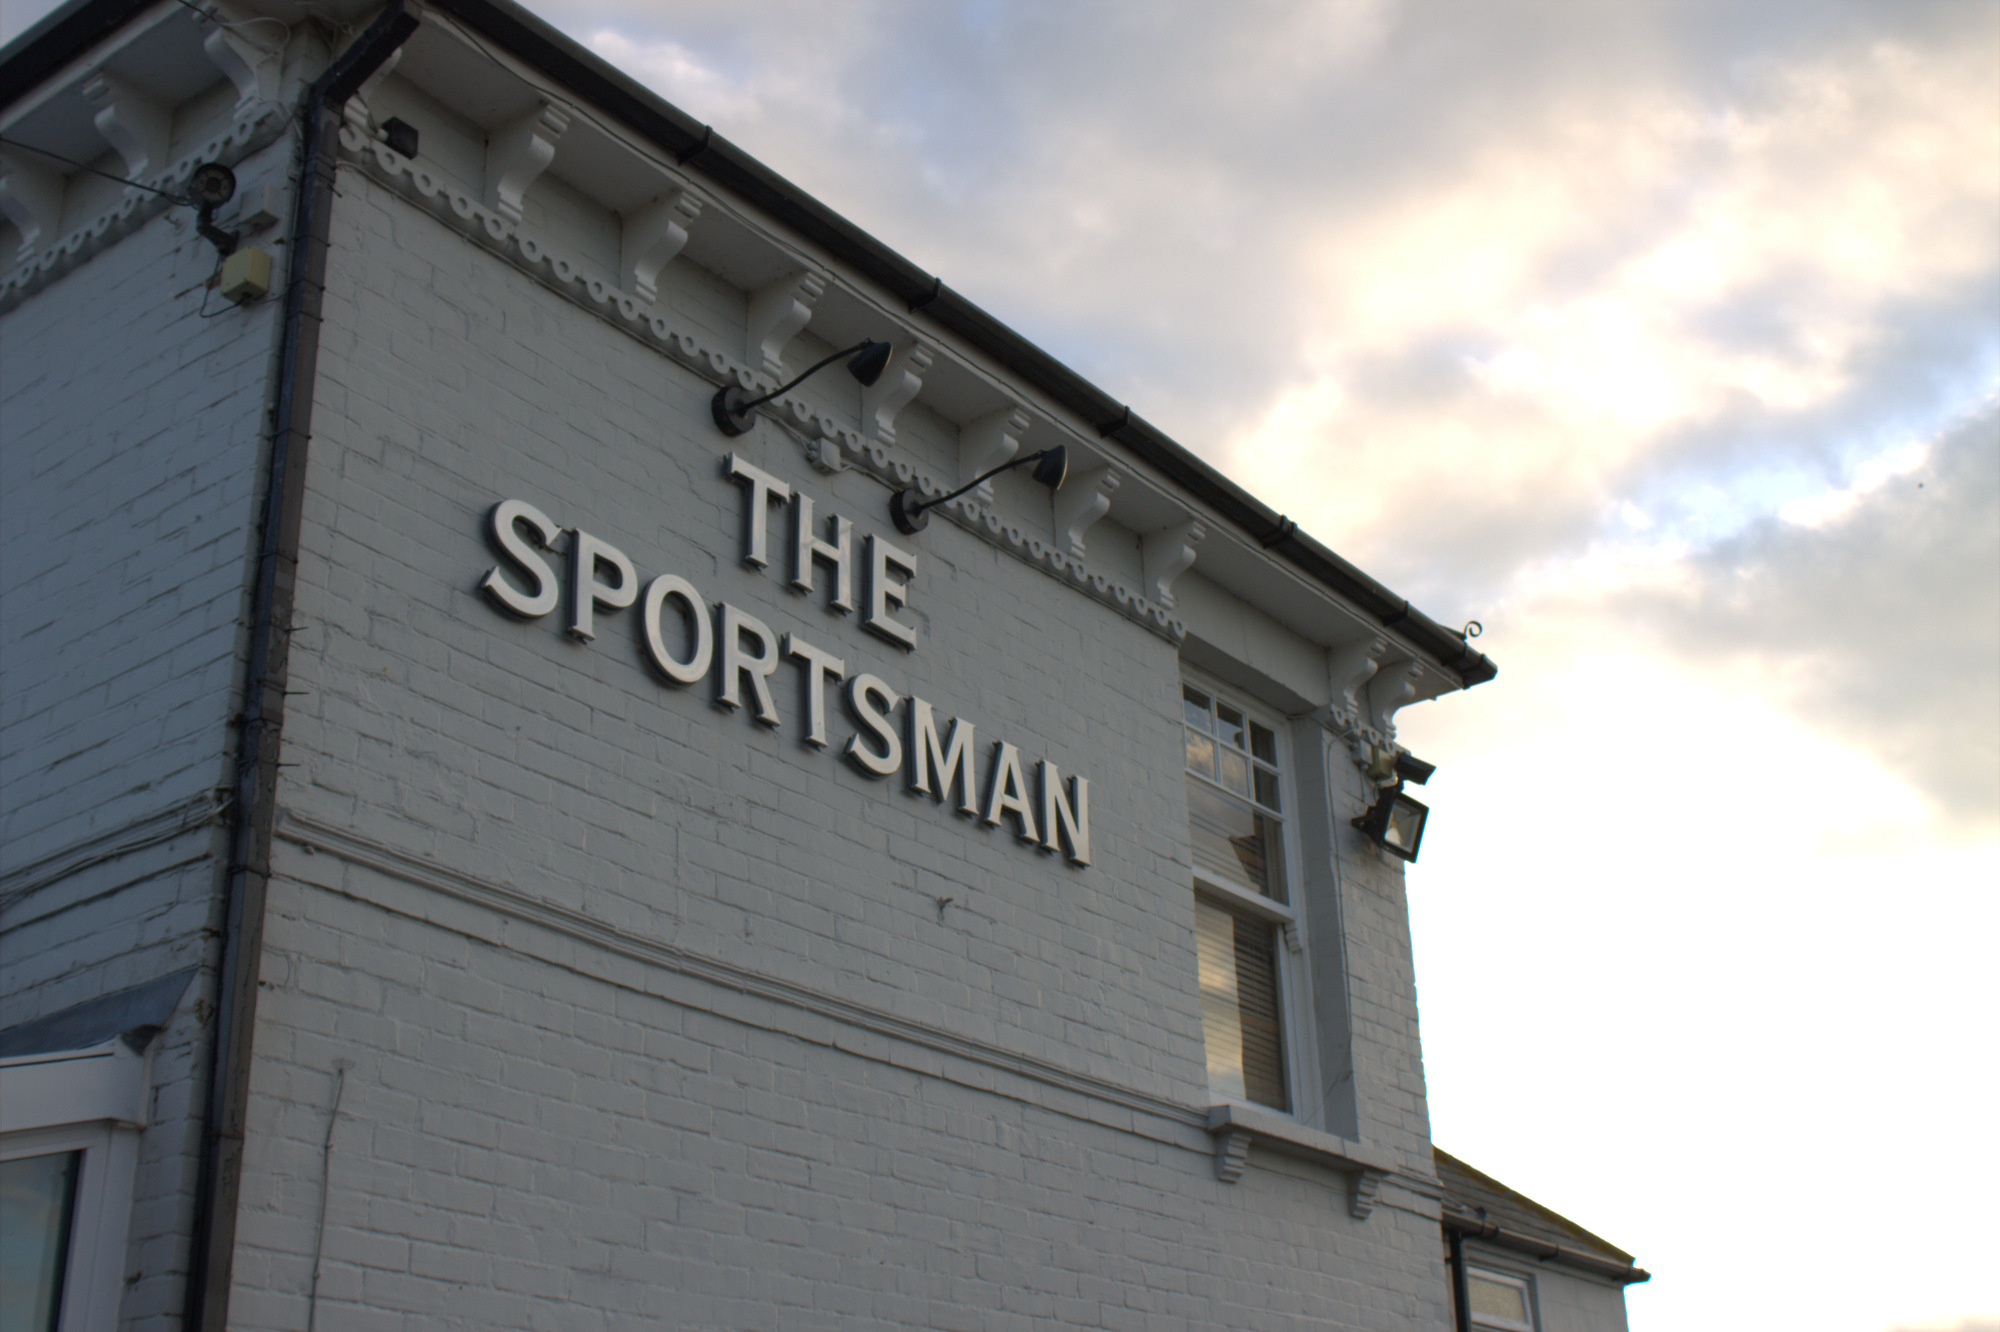 Chef Owner:Stephen Harris - Cuisine: Modern BritishHead Chef: Dan FlavellMichelin: One StarAA: Two RosettesTwitter: @sportsmankentInstagram: @sportsmankentAddress: Faversham Road, Seasalter, Whitstable, CT5 4BPPhone: 01227 273370 Website: thesportsmanseasalter.co.uk